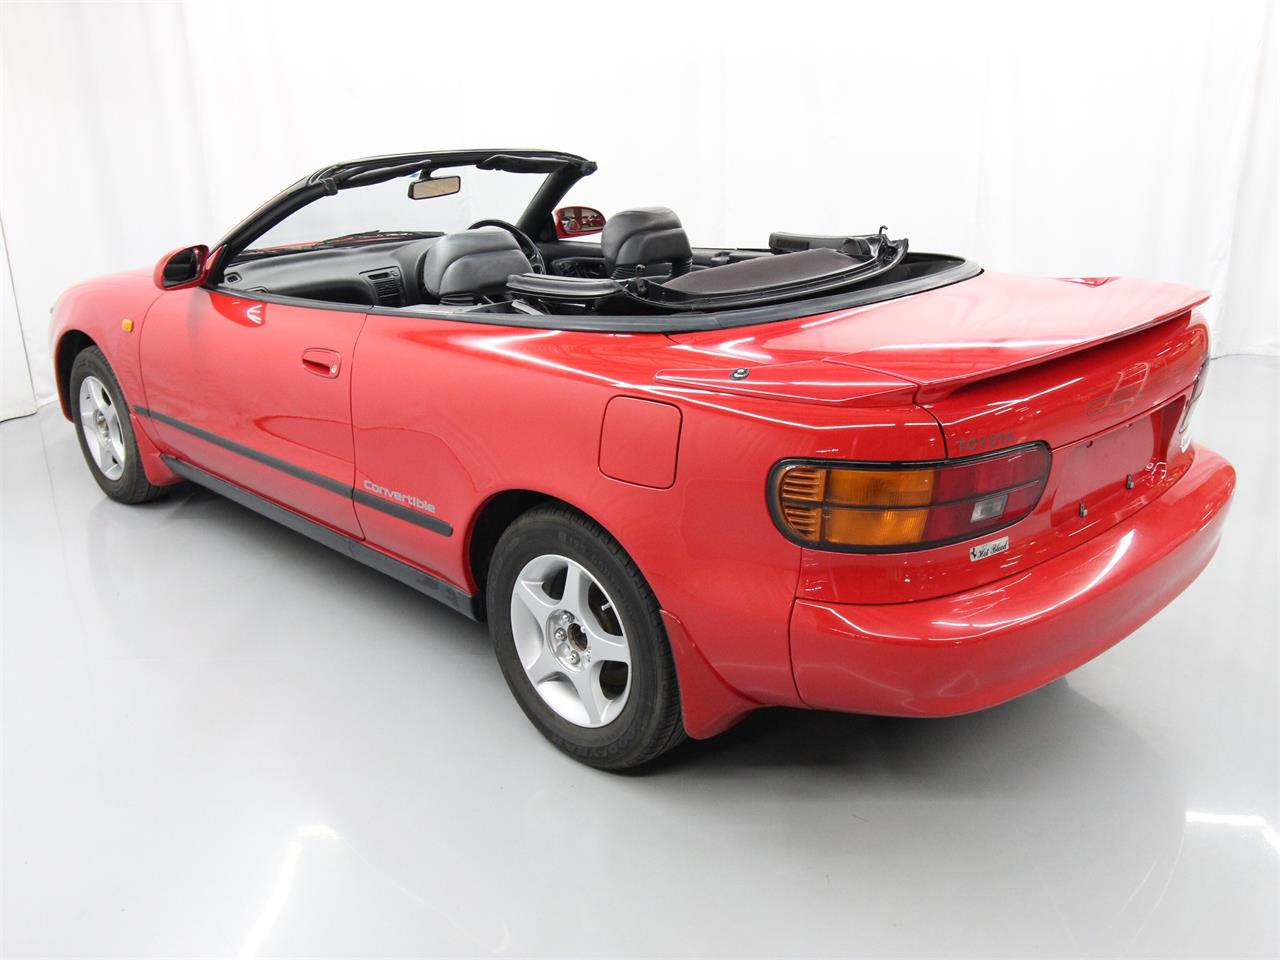 1991 Toyota Celica (CC-1297942) for sale in Christiansburg, Virginia